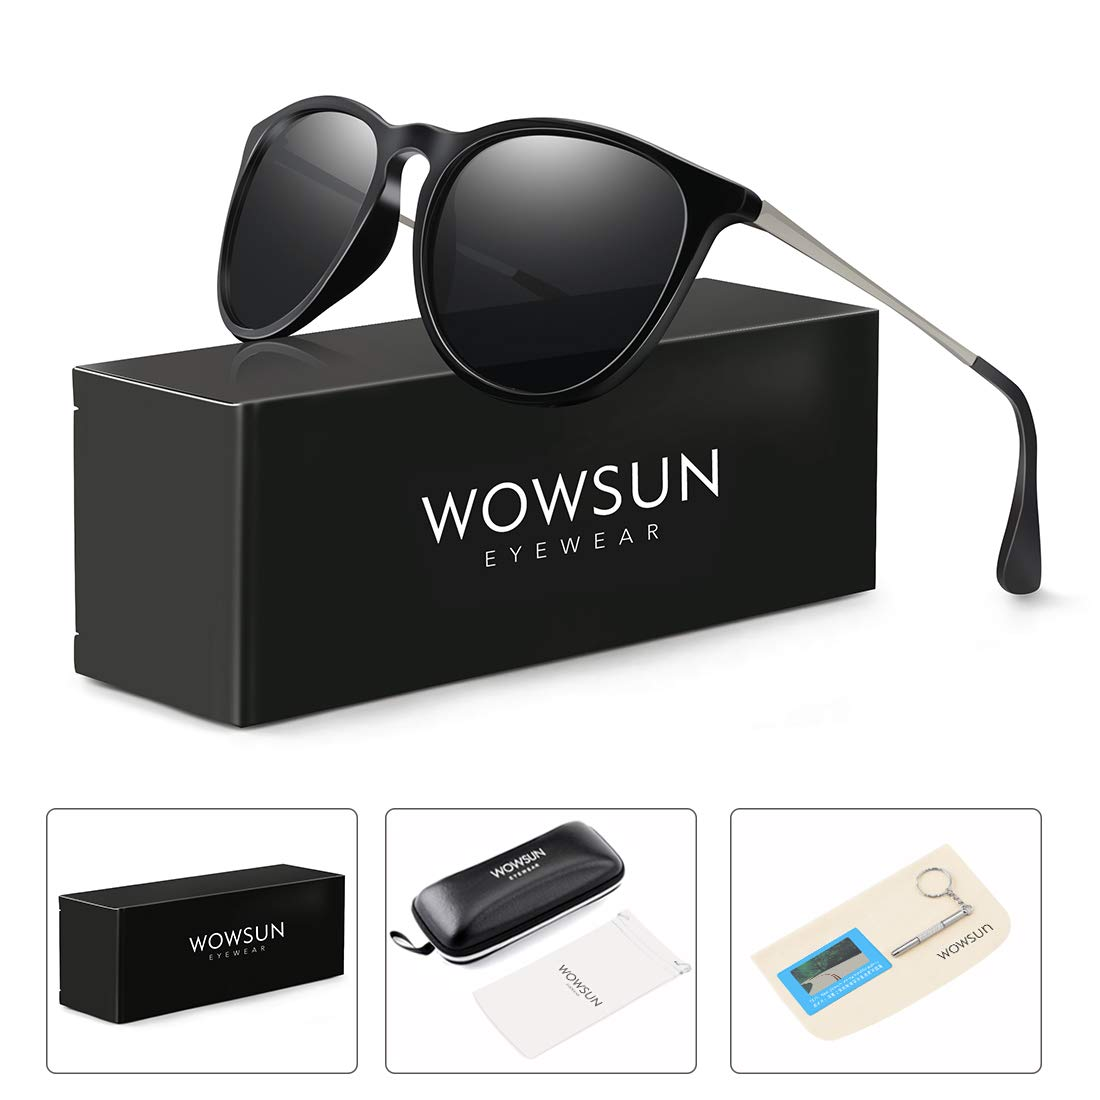 Very cool affordable sunglasses